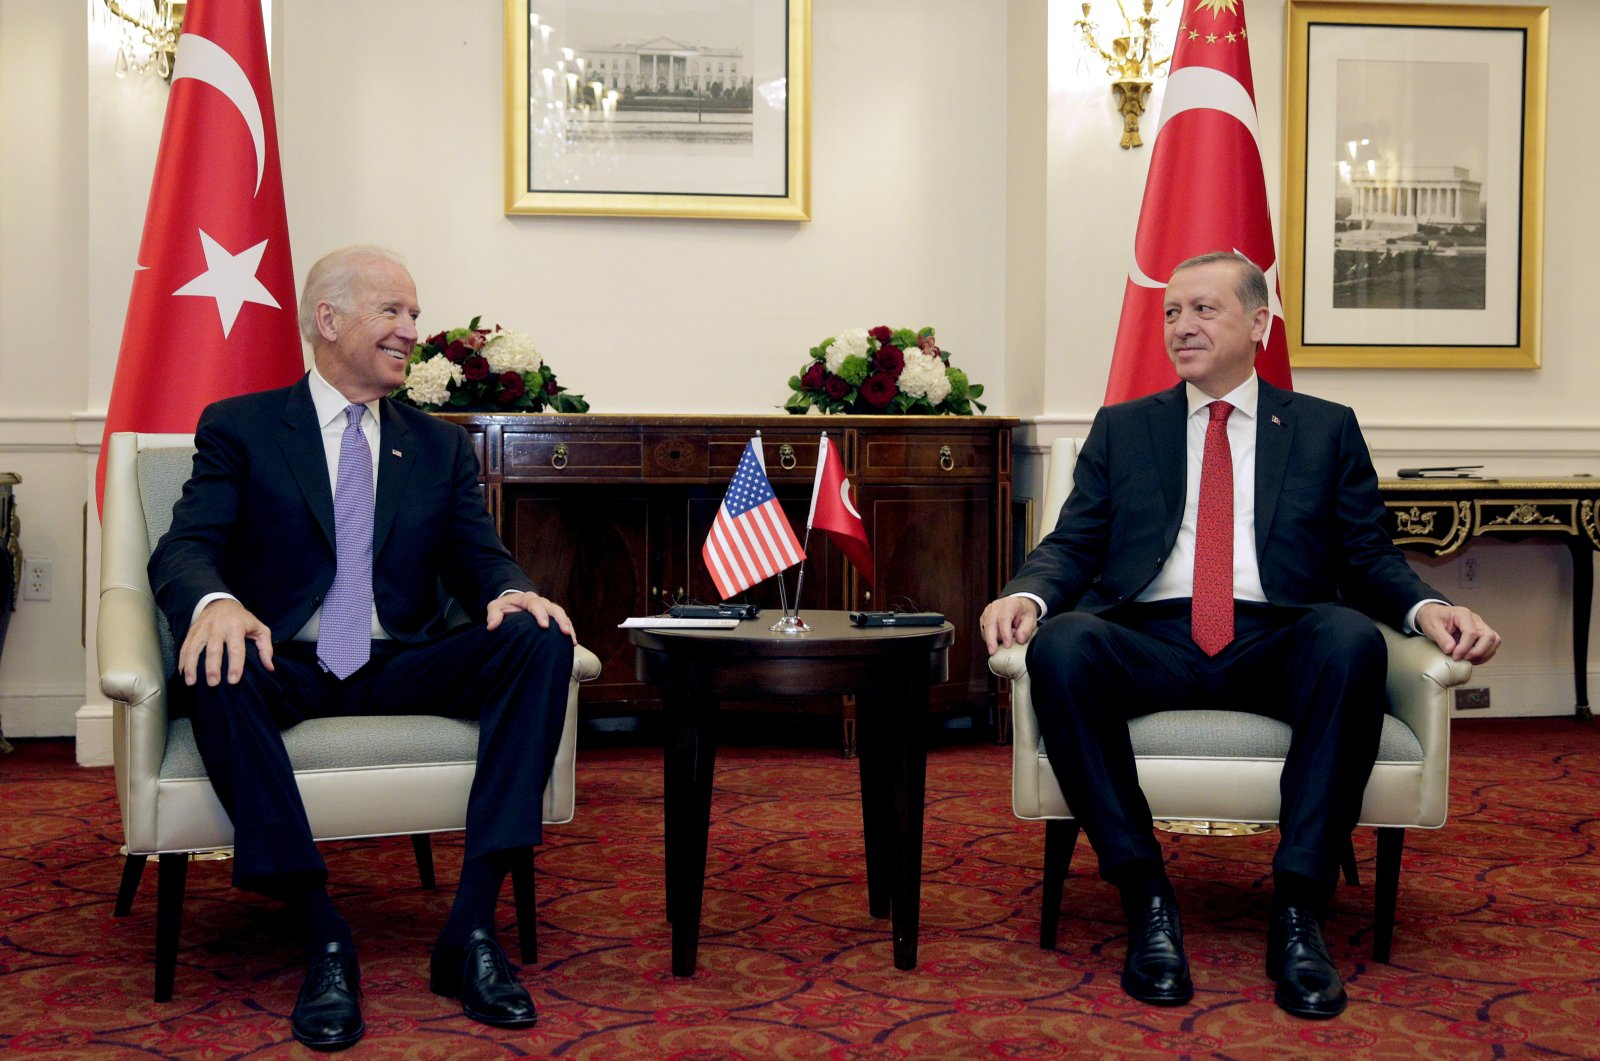 President Recep Tayyip Erdoğan and then U.S. Vice President Joe Biden at a meeting in Washington, the U.S., March 31, 2016. (Reuters Photo)